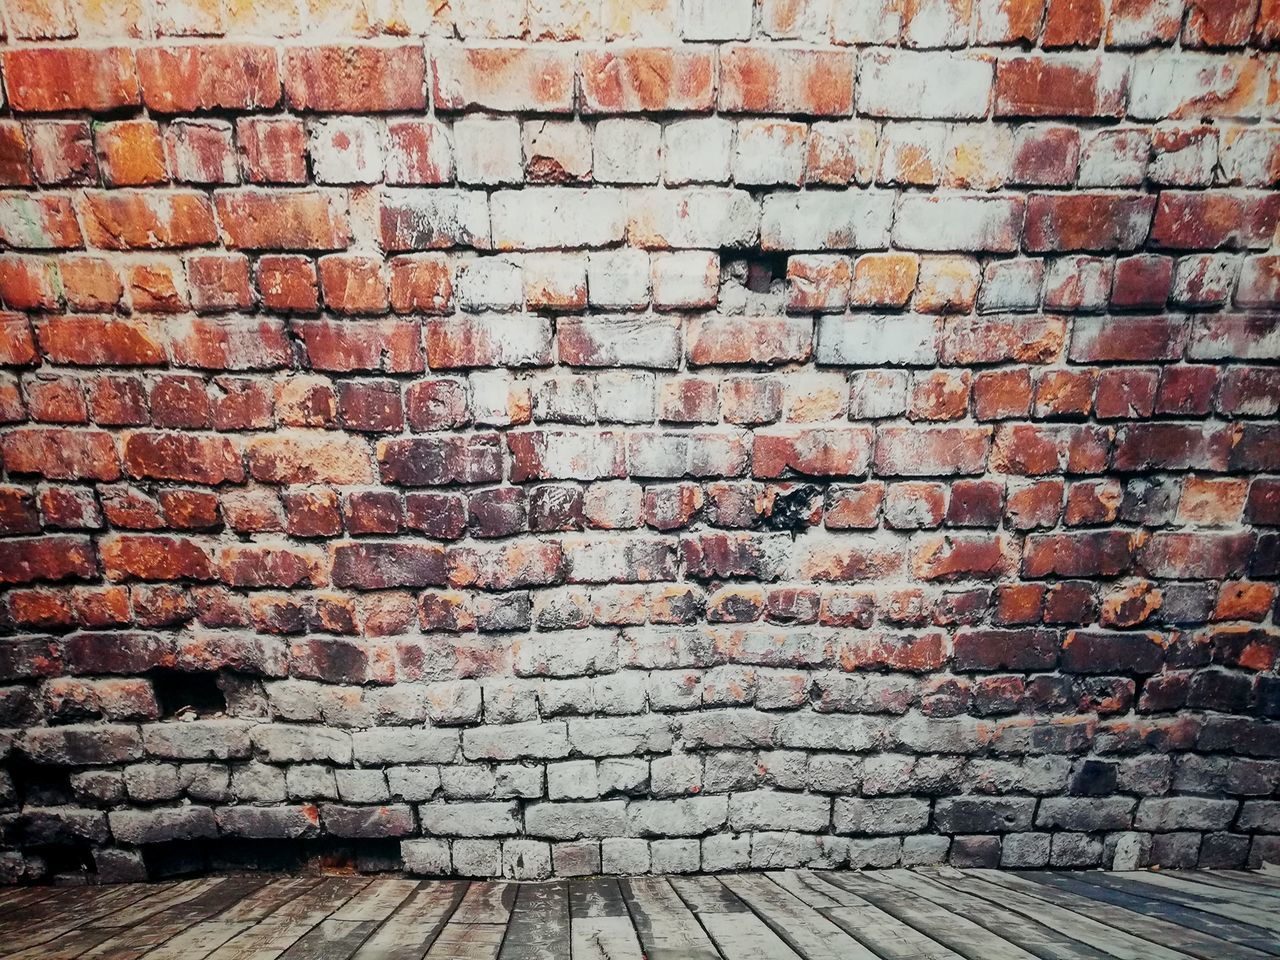 brick wall, architecture, built structure, no people, day, full frame, backgrounds, textured, outdoors, building exterior, close-up